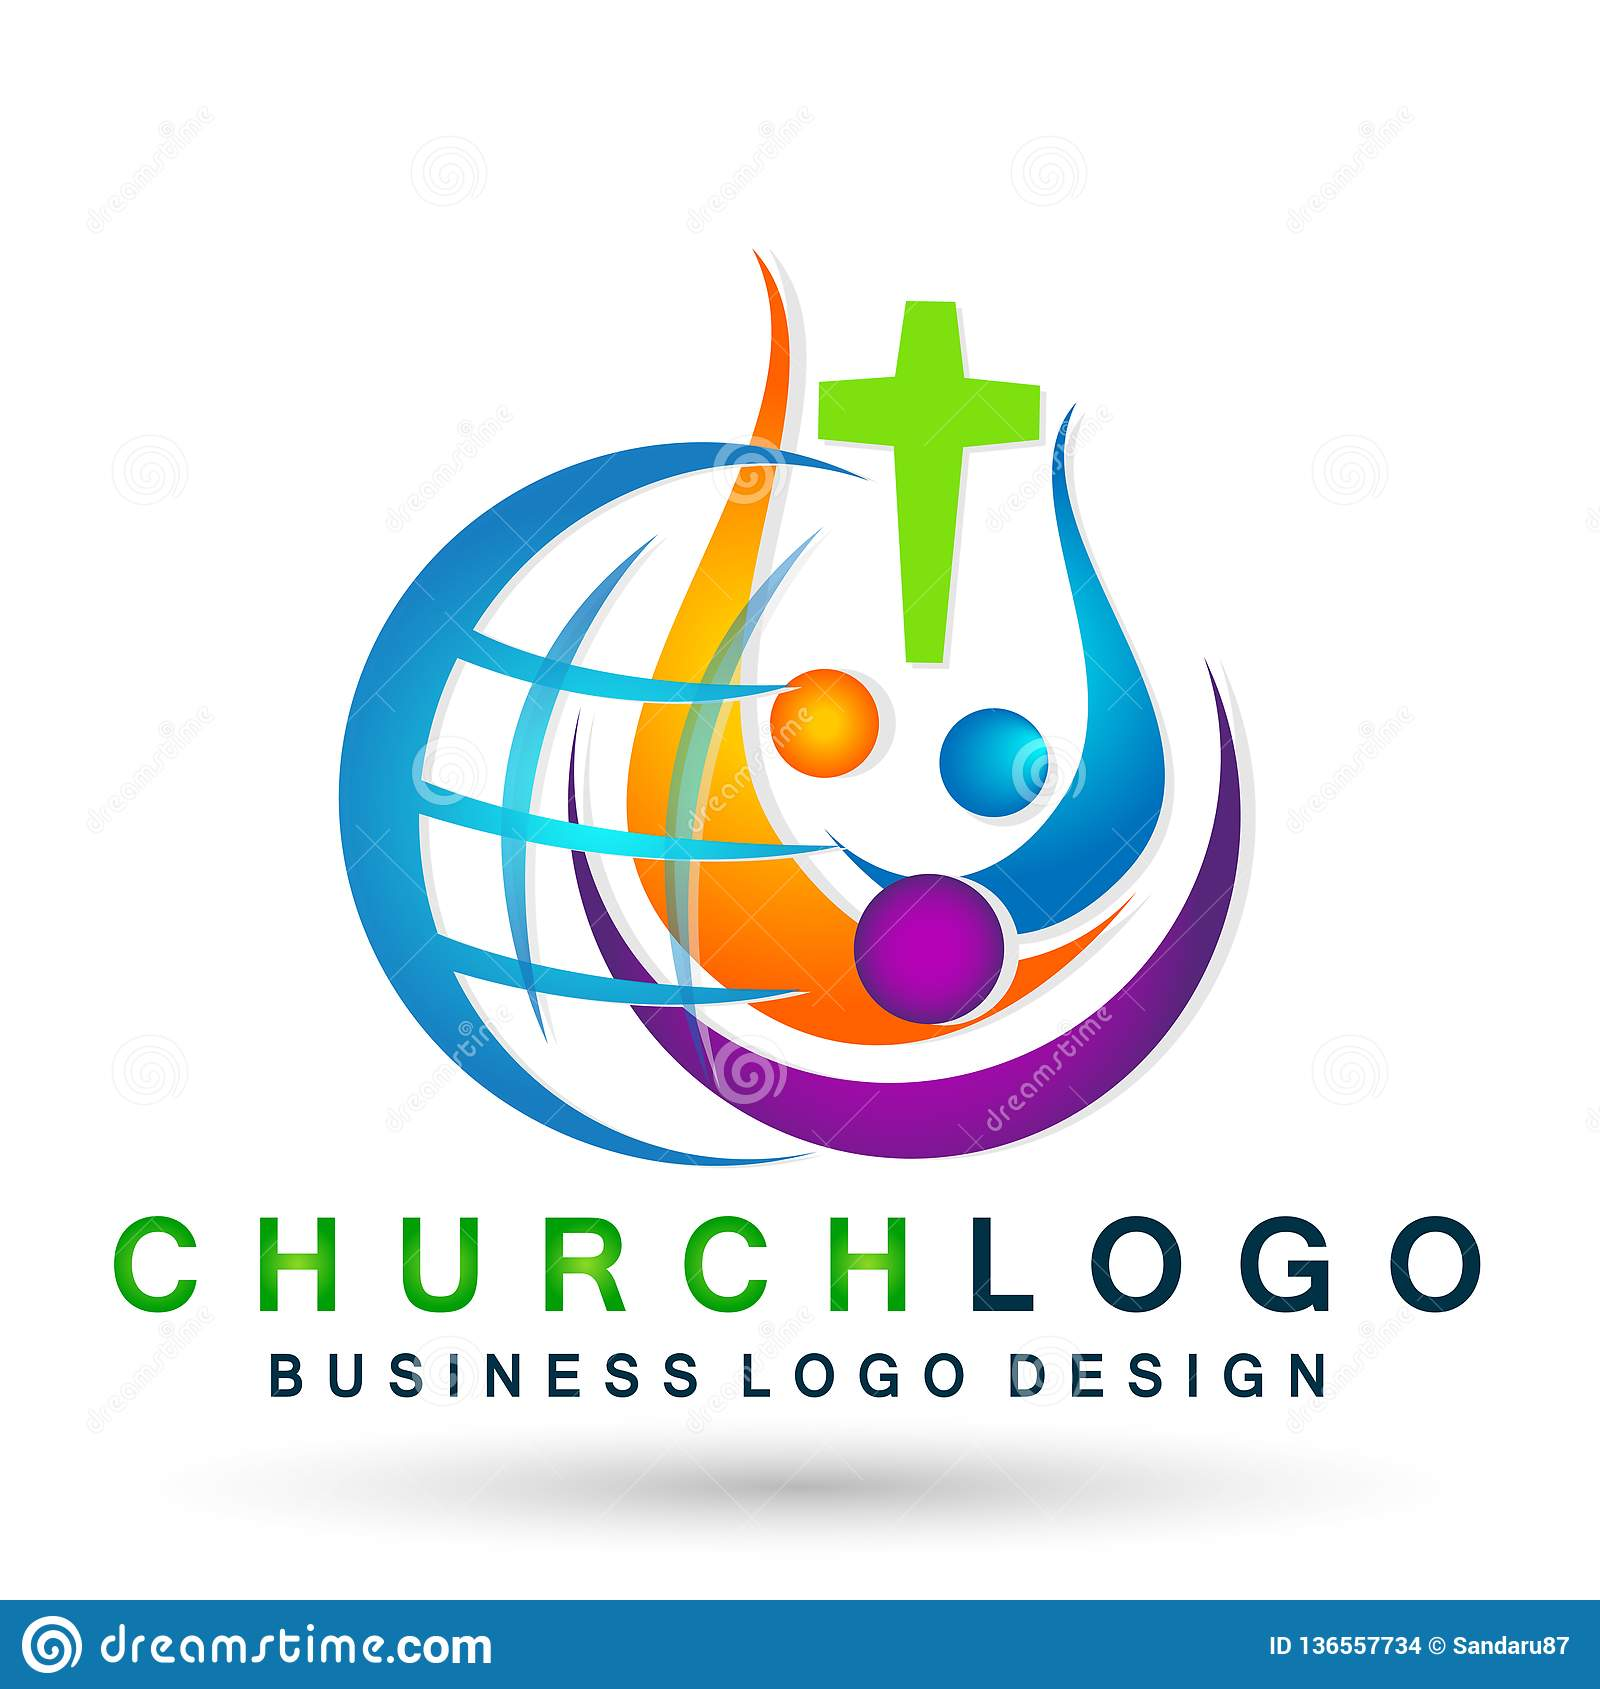 Globe world Church People union logo icon winning happiness love together team success wellness health symbol on white background